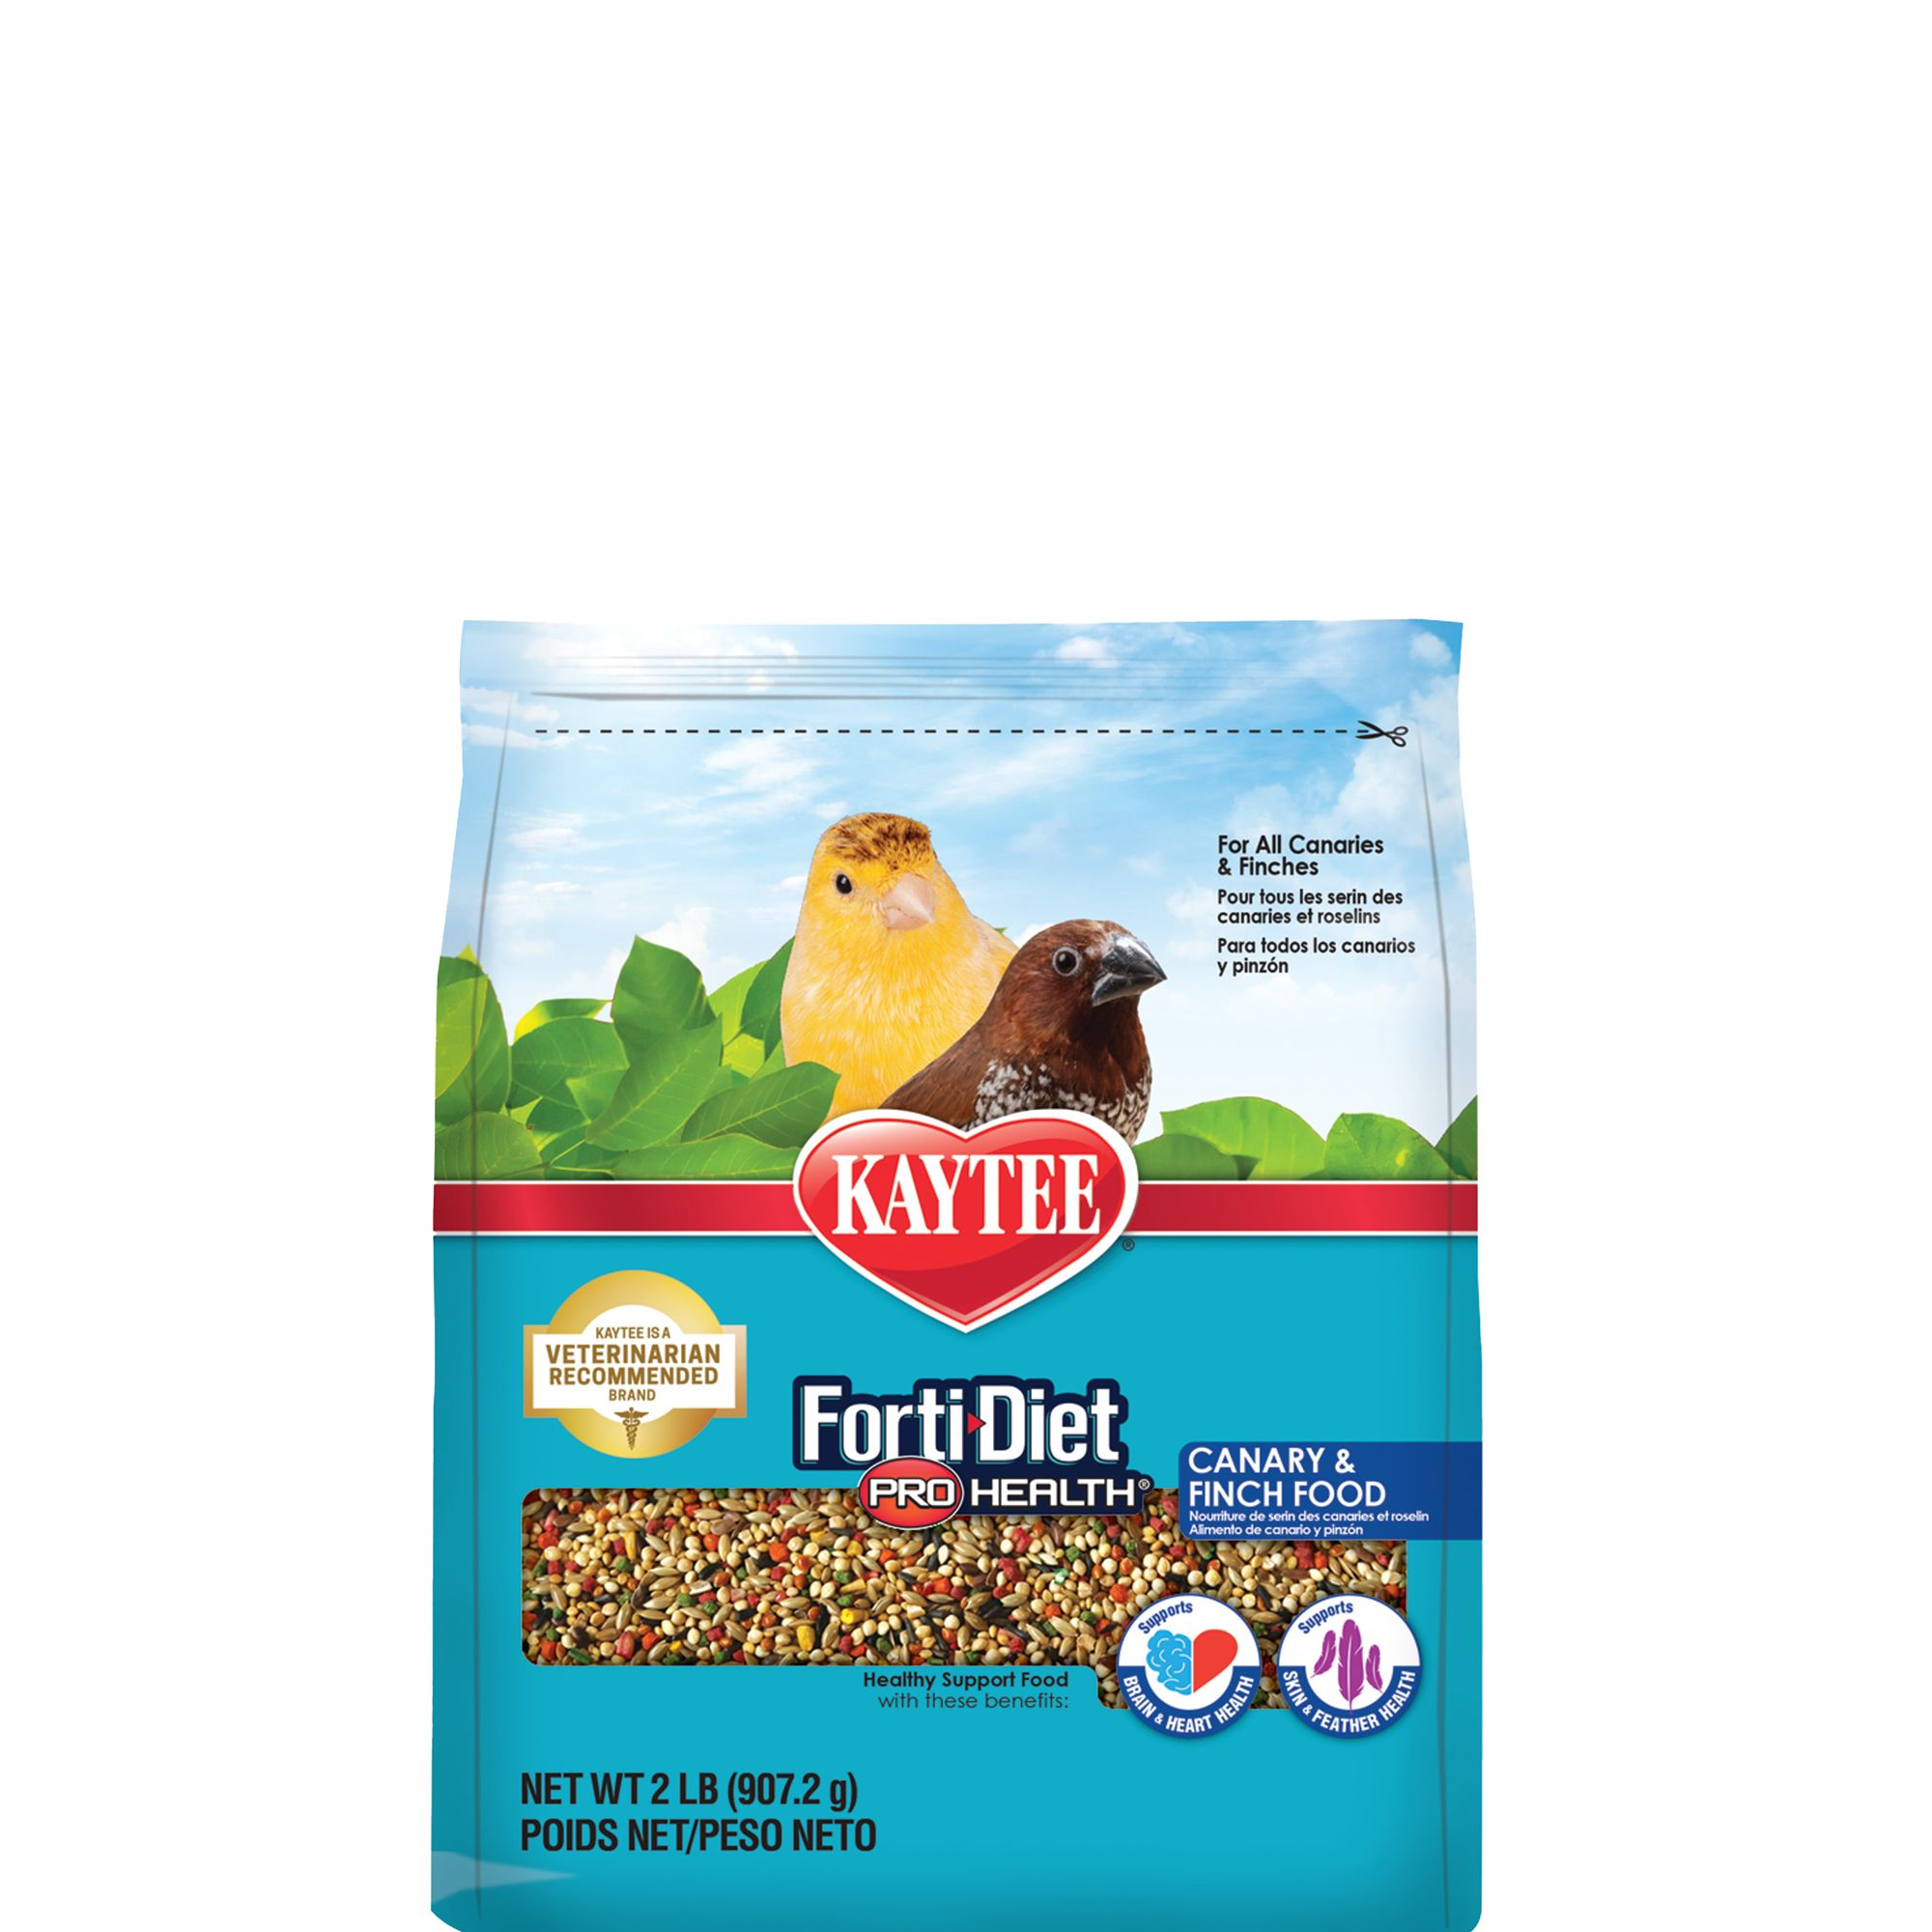 Kaytee Forti-Diet Pro Health Canary and Finch Food size: 2 Lb 5232921